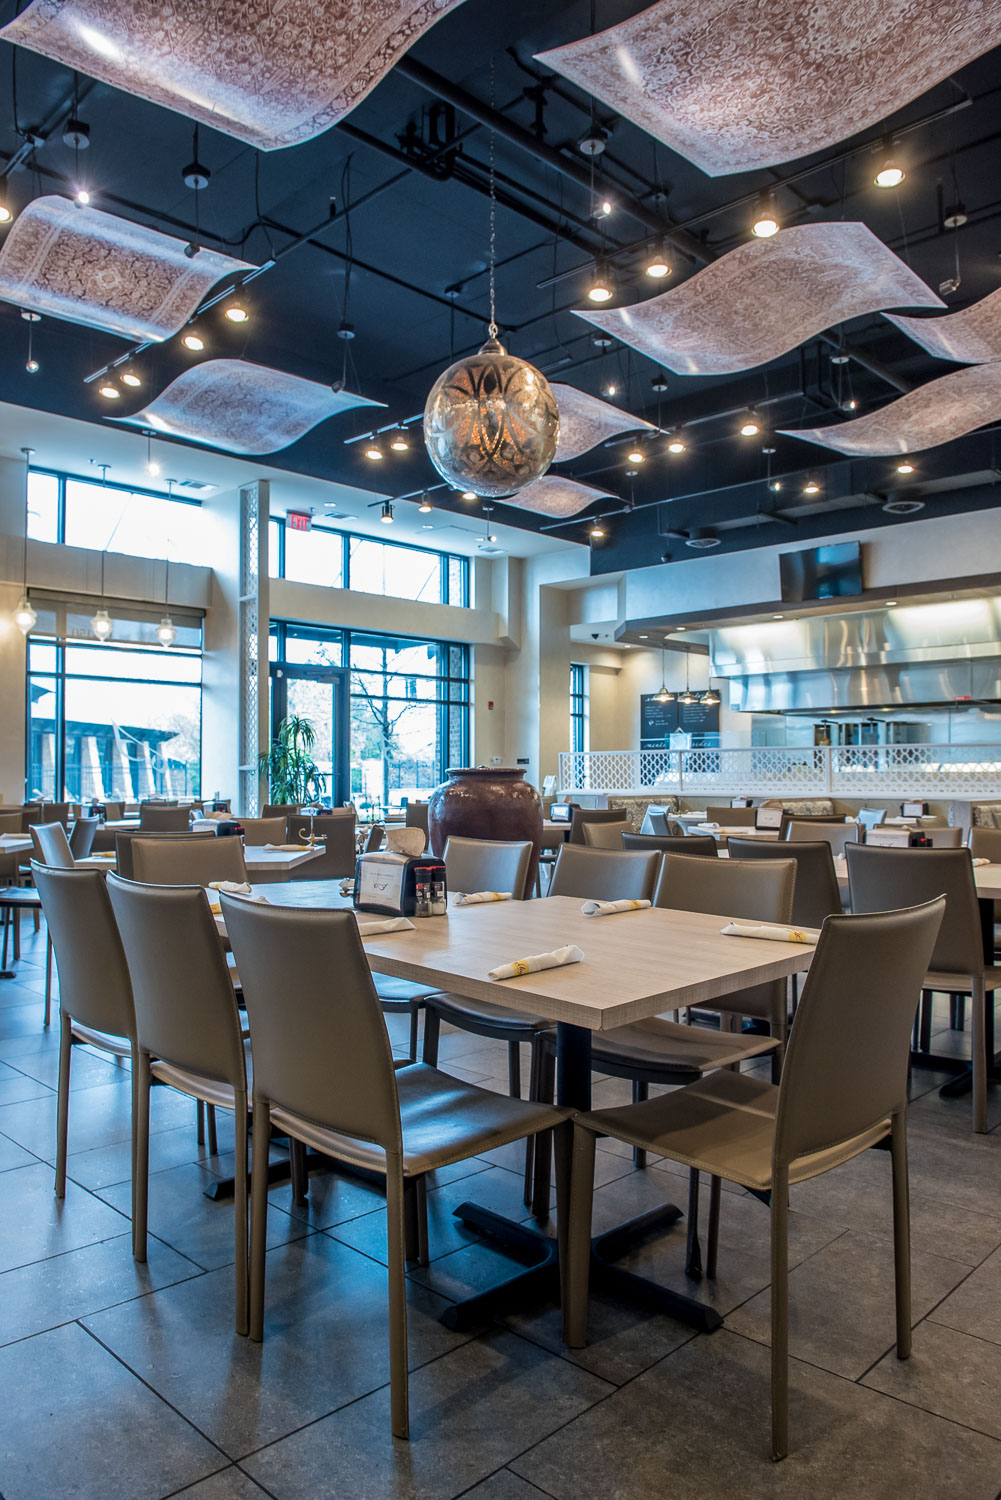 Aladdin's Mediterranean Grill Emory Point Restaurant Photos